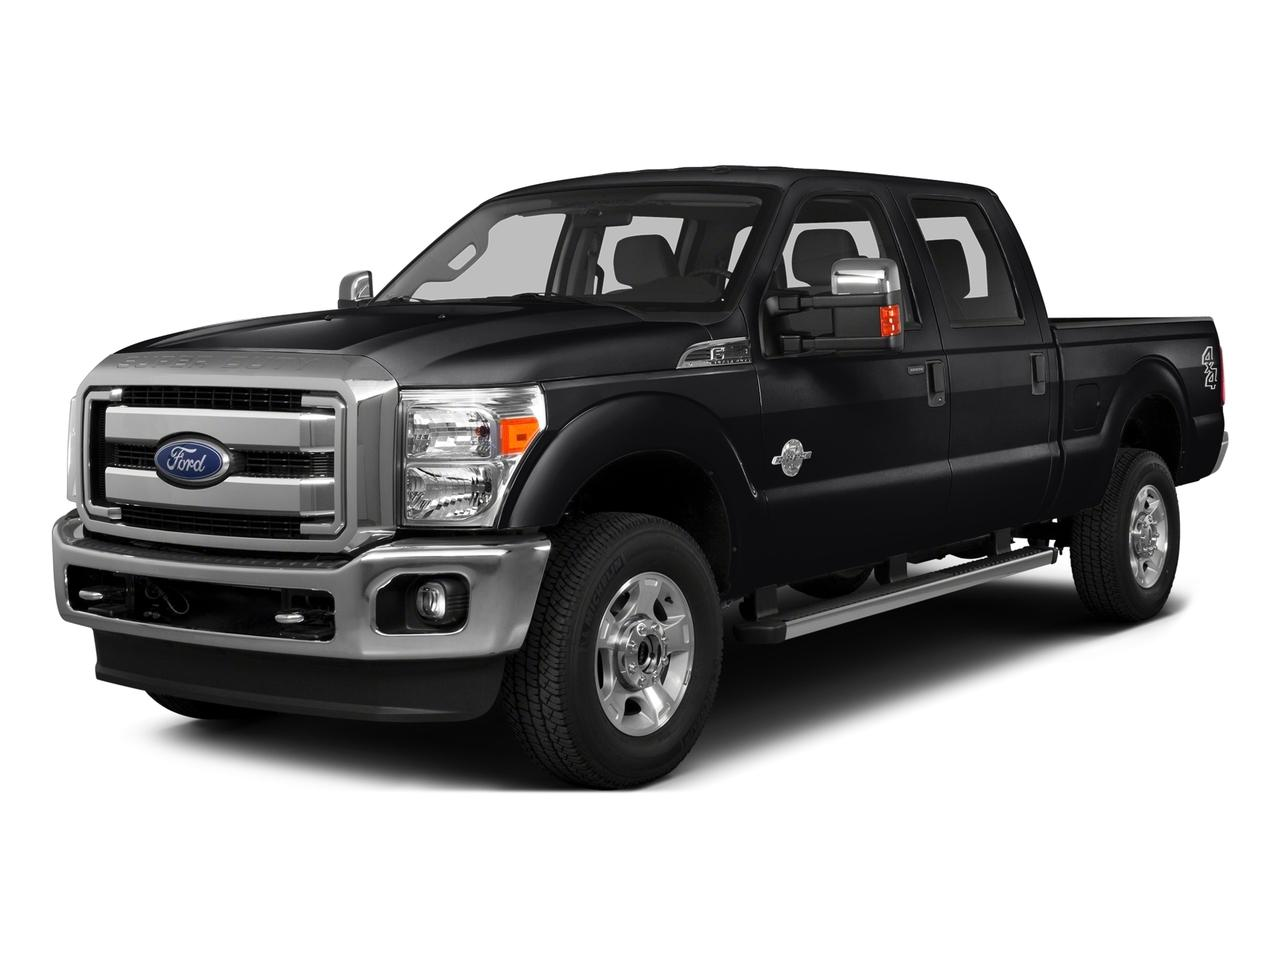 2016 Ford Super Duty F-350 SRW Vehicle Photo in Easton, MD 21601